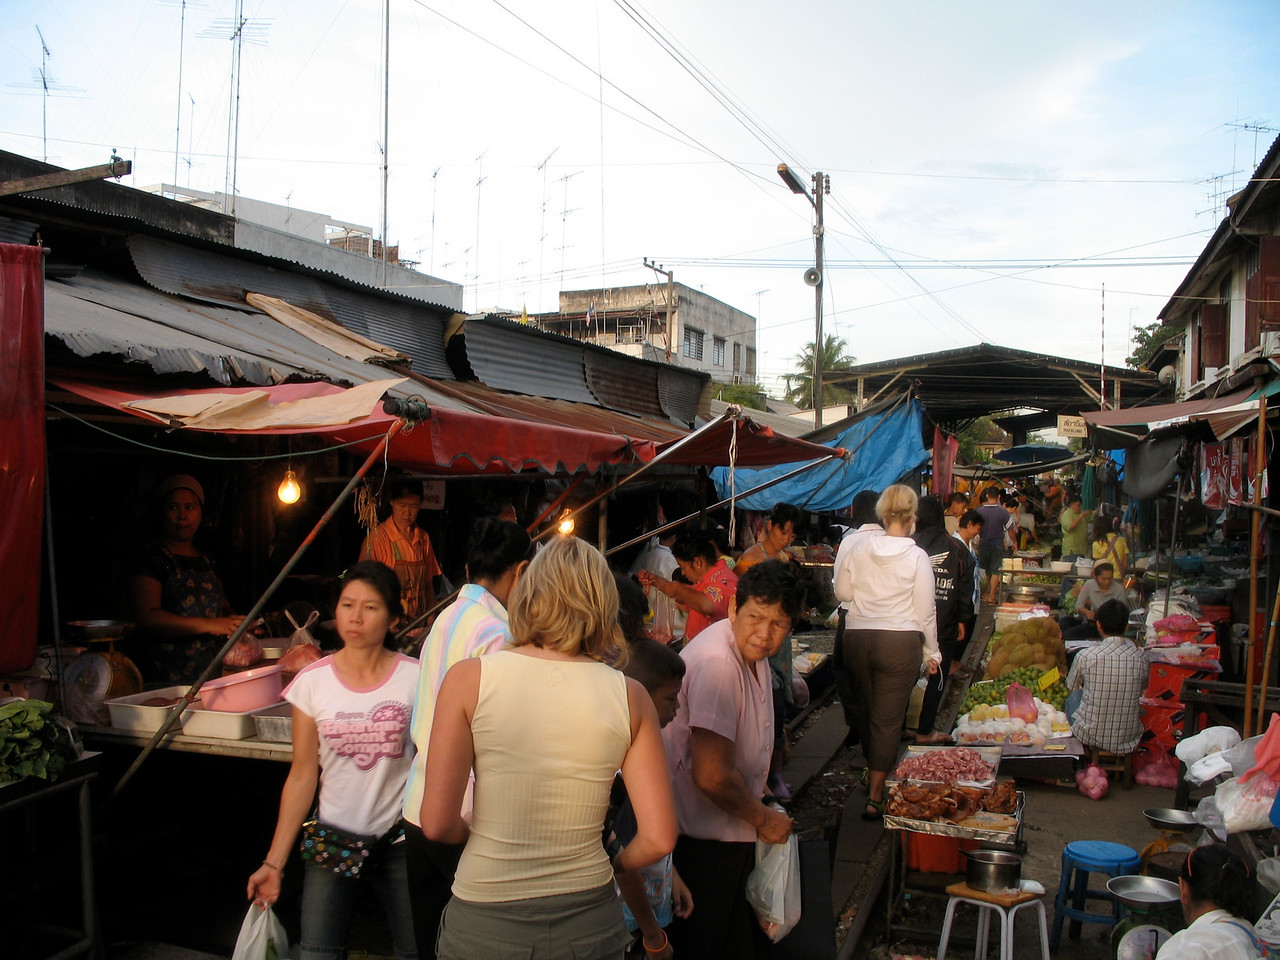 The Floating Market is about 70 miles southwest of Bangkok.  About half way there, we stop in a local town to take a look through their morning market.